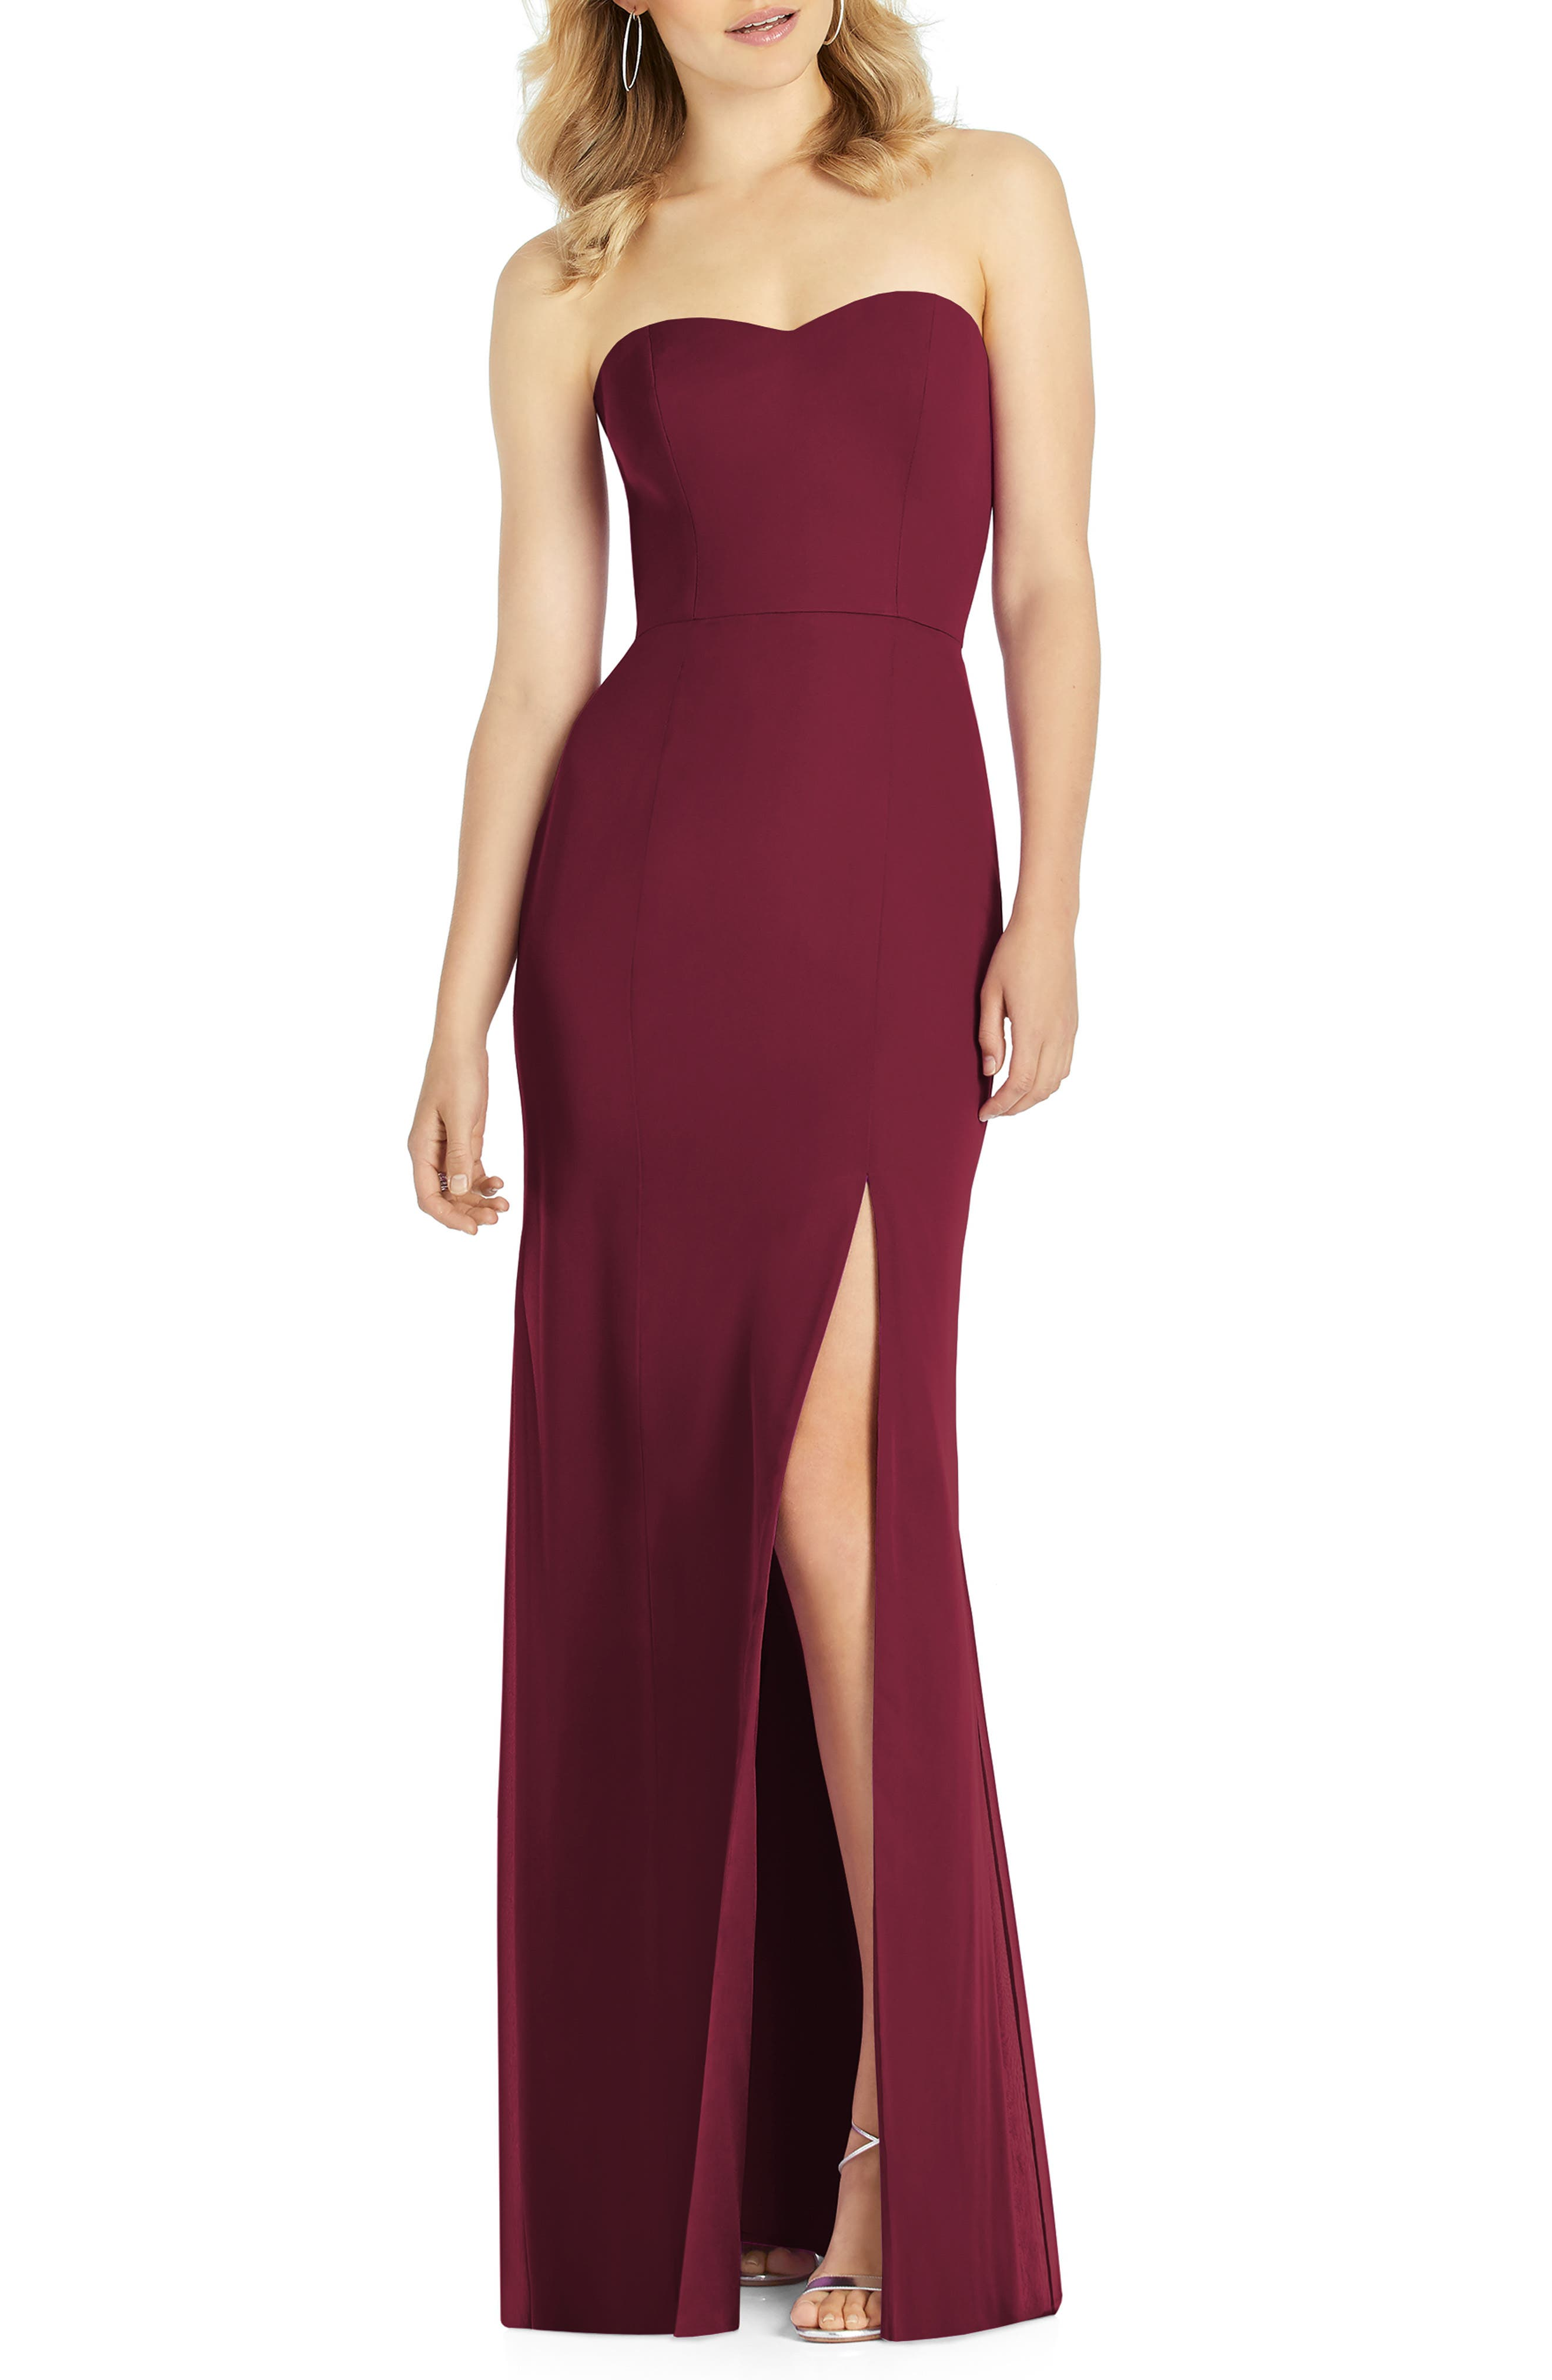 After Six Strapless Chiffon Trumpet Gown, Burgundy